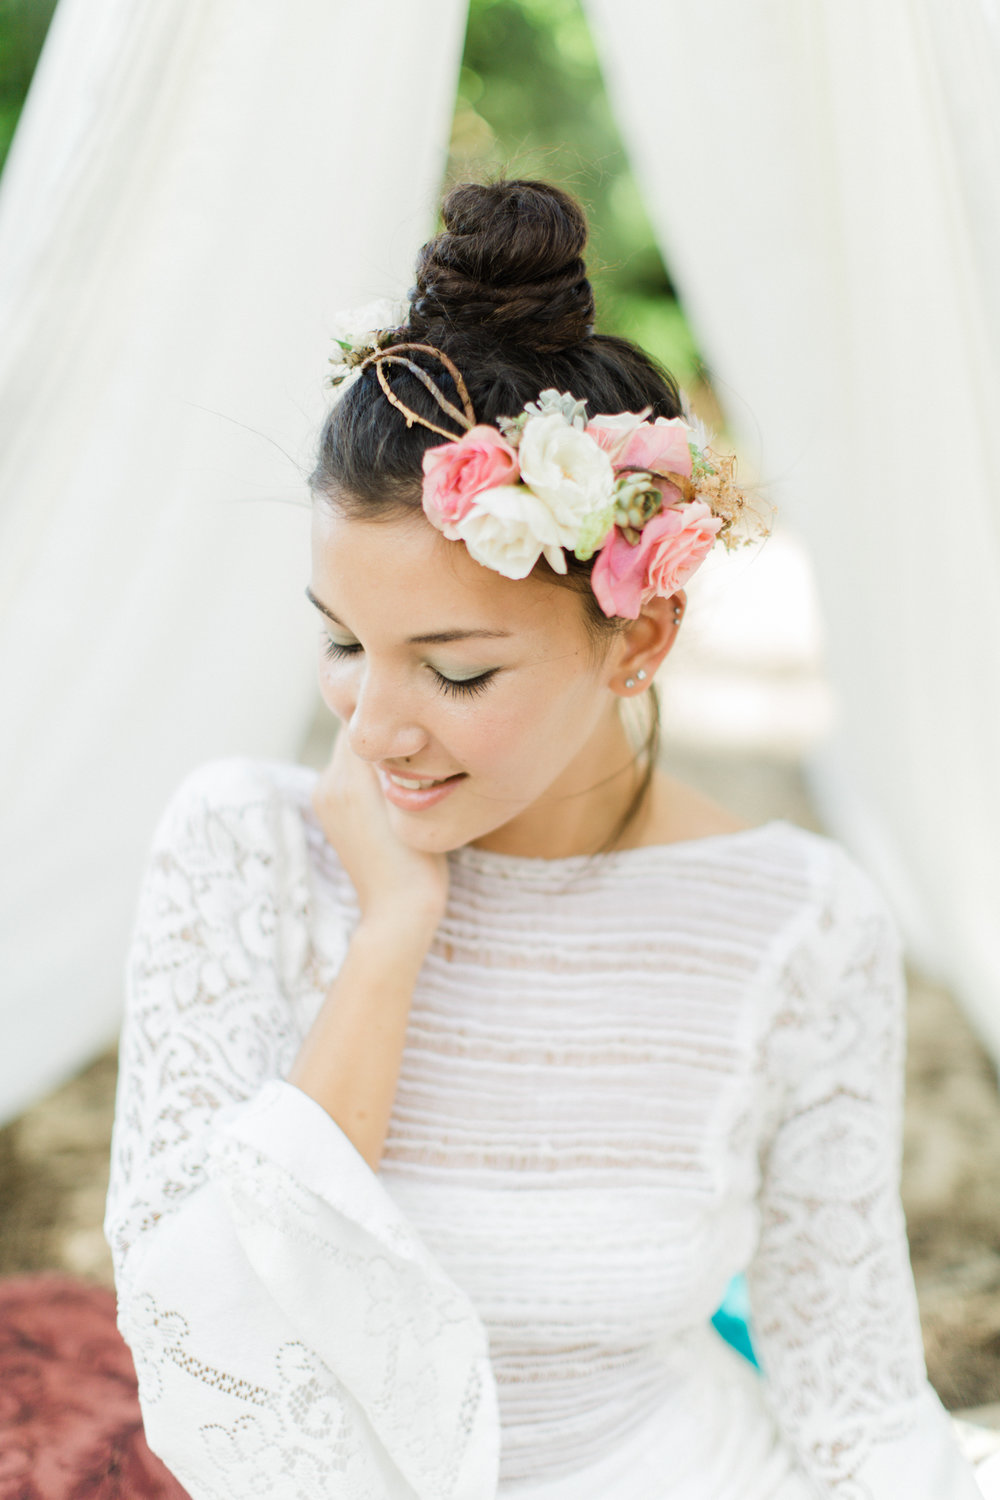 hair-flower-rose-hair-crown-hawaii-florist.jpg